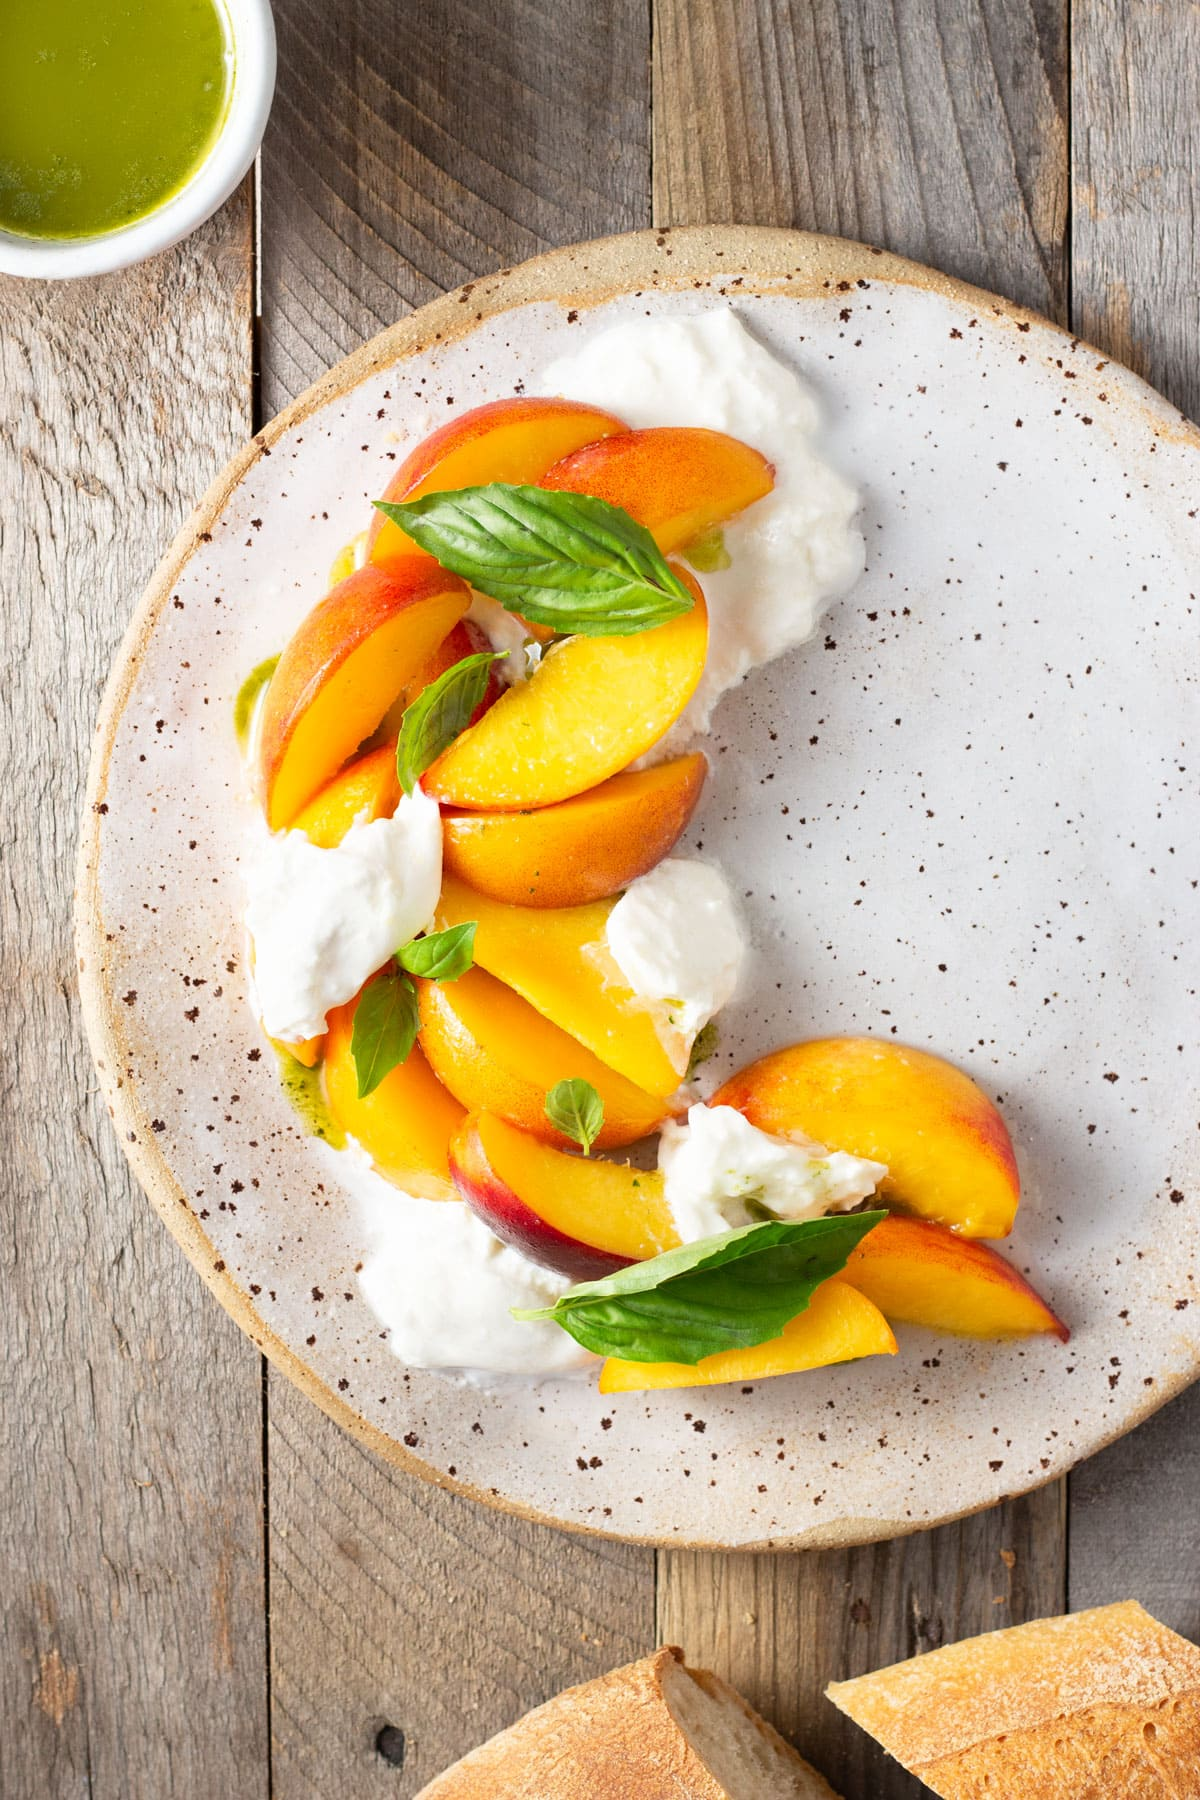 Overhead view of a rustic plate topped with sliced peaches, chunks of burrata cheese and fresh basil leaves with a cup of basil oil in the corner.